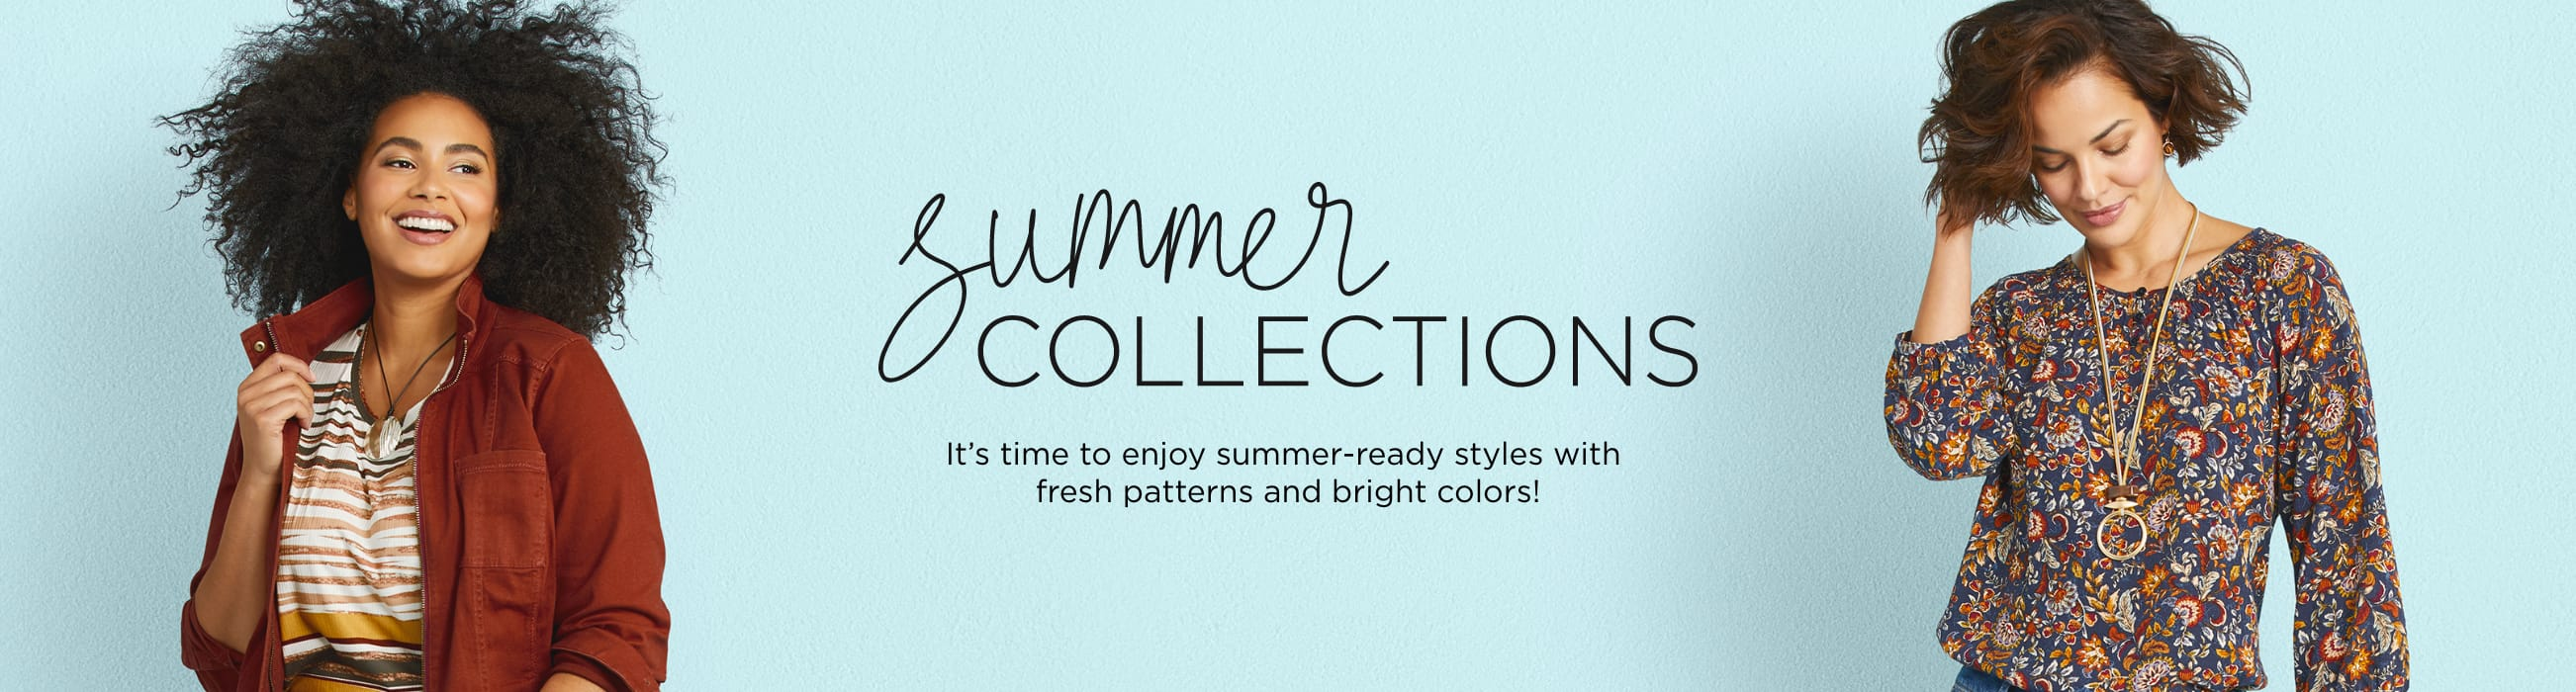 Summer Collections. It's time to enjoy summer-ready styles with fresh patterns and bright colors!